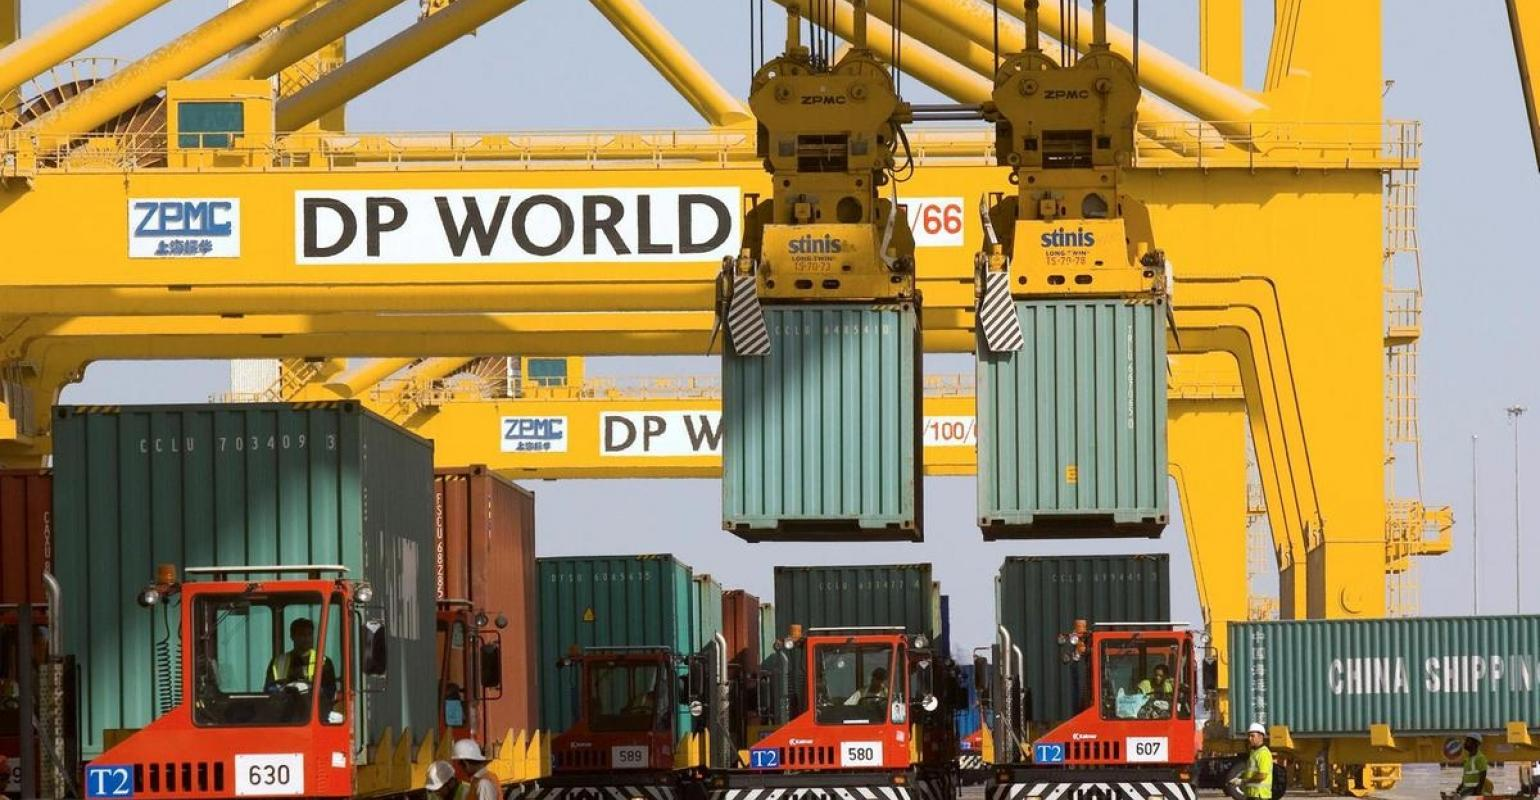 H1 profit of DP World's takes a massive hit